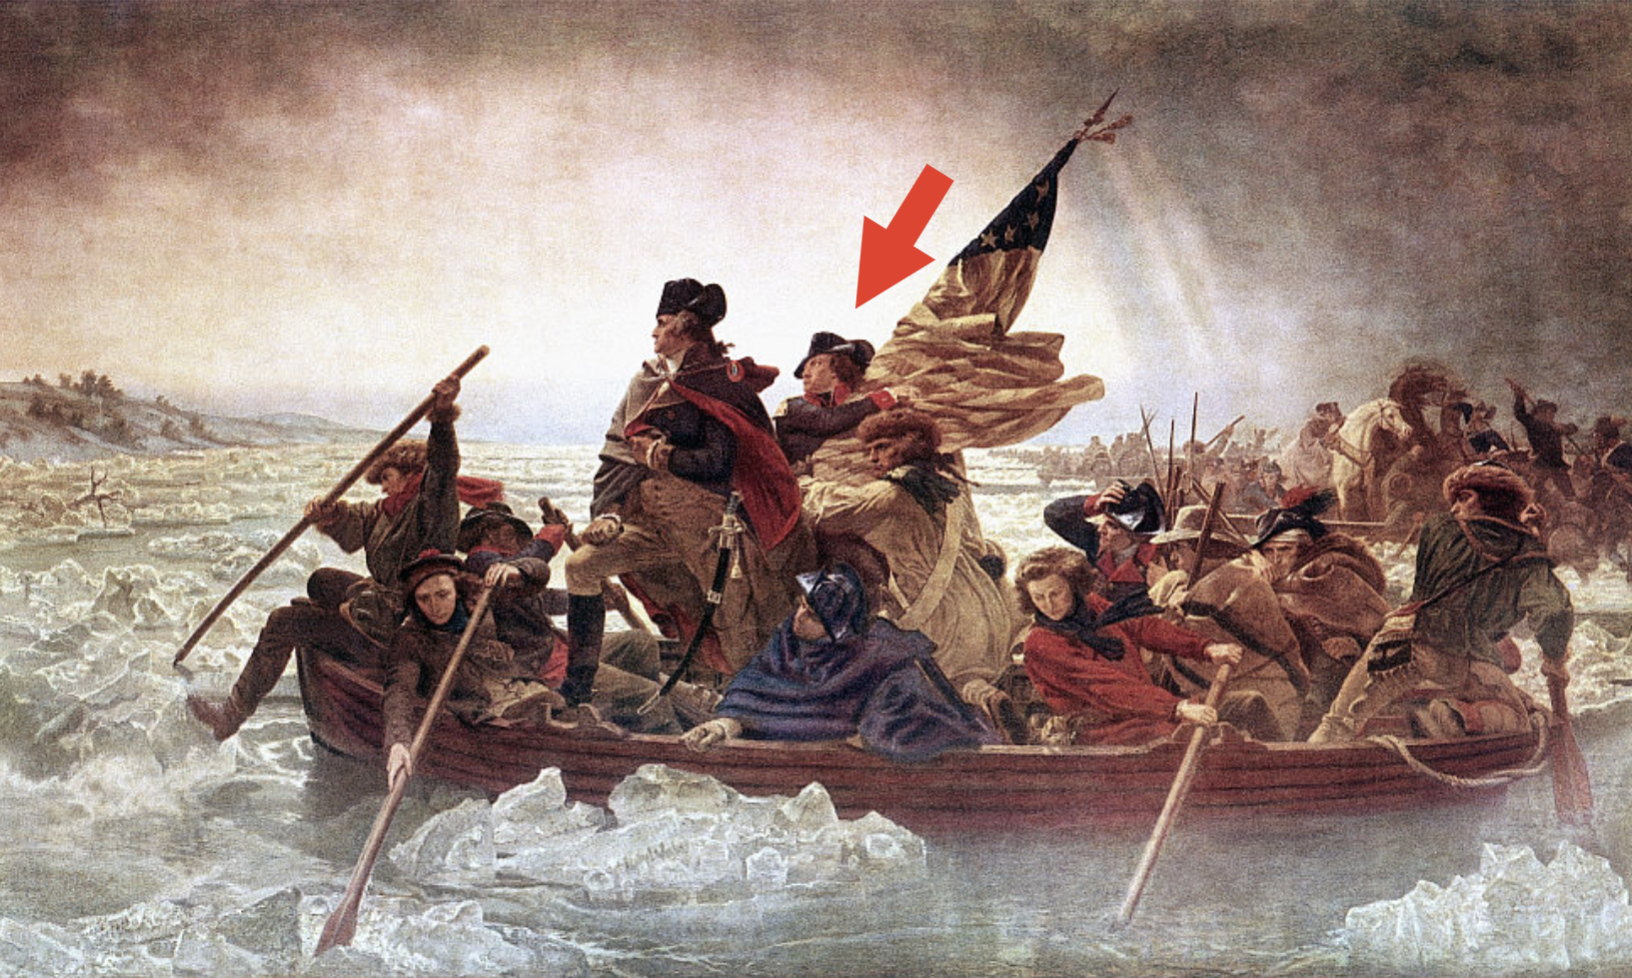 The painting, with James Monroe holding the flag